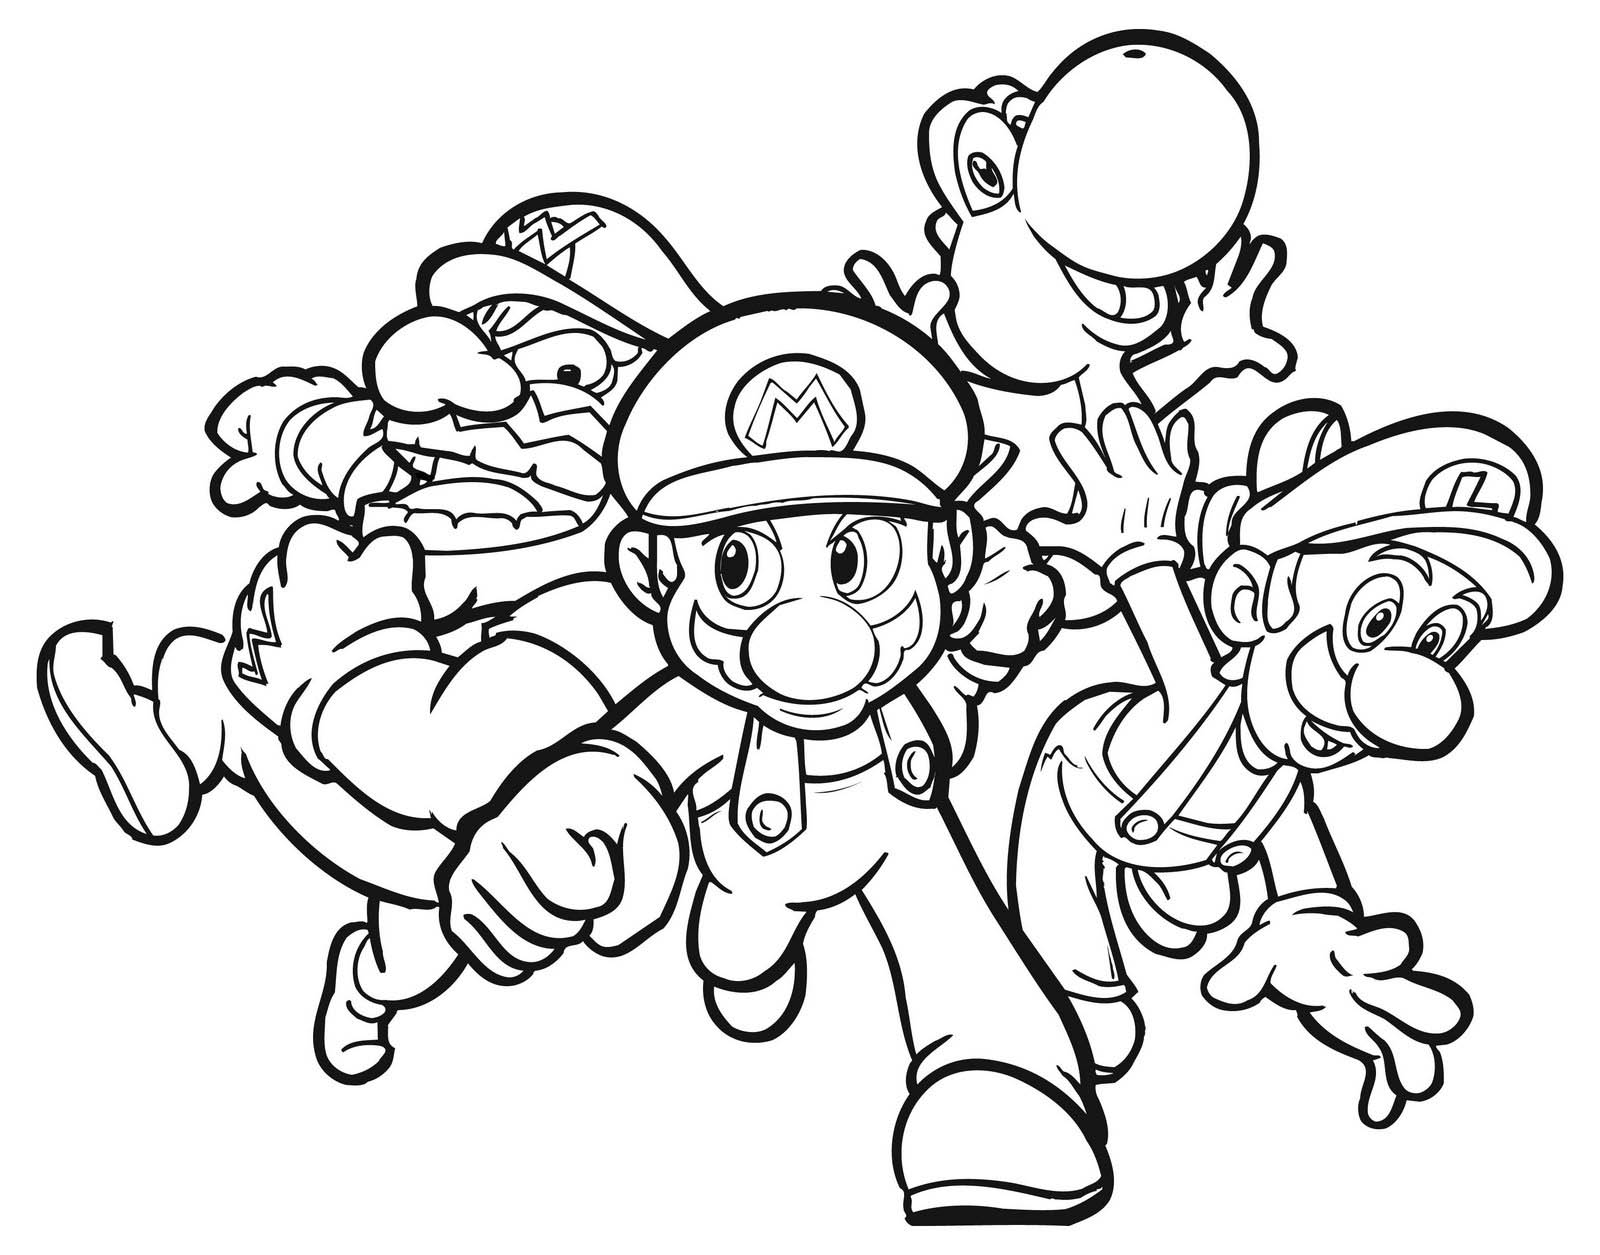 Refreshing image with mario printable coloring pages